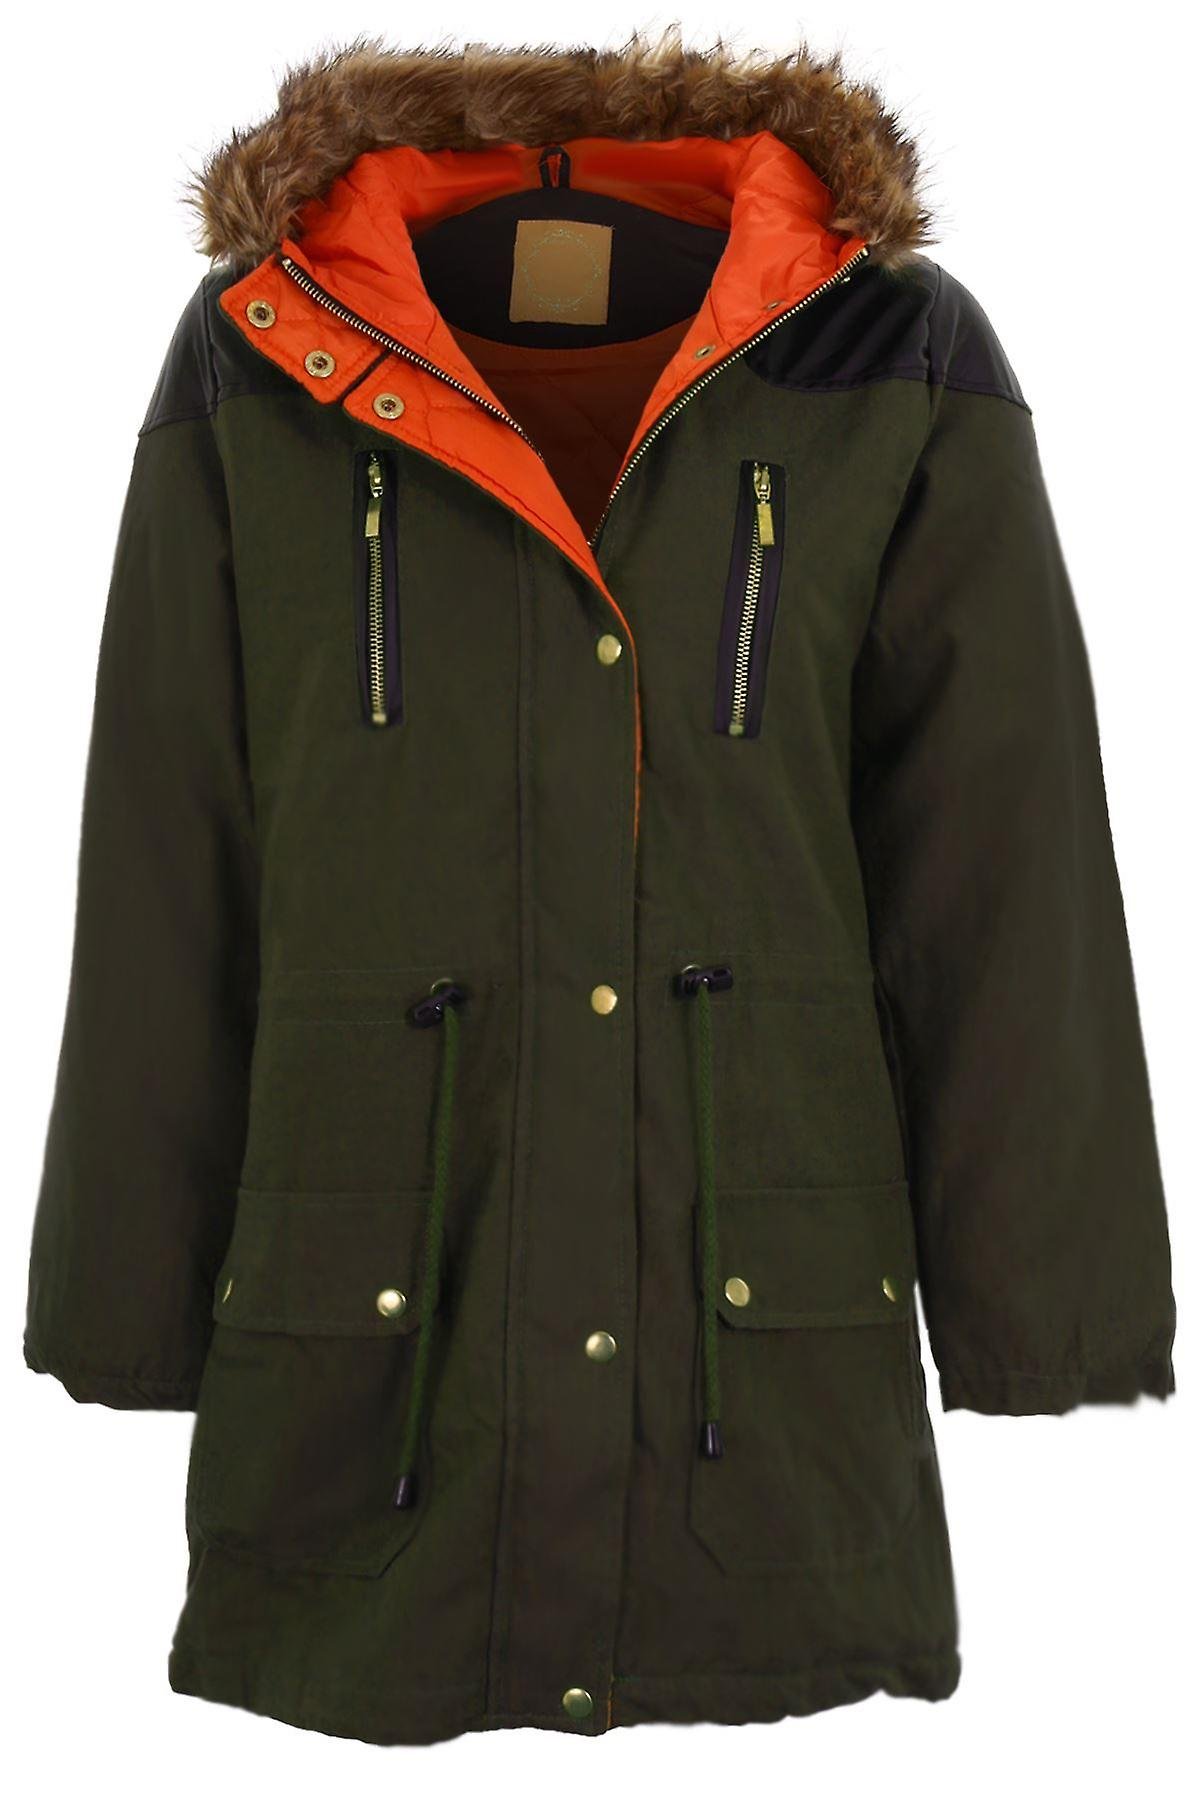 Ladies Khaki Quilted PVC Contrast Coat Women's Fishtail Fur Hooded Parka Jacket